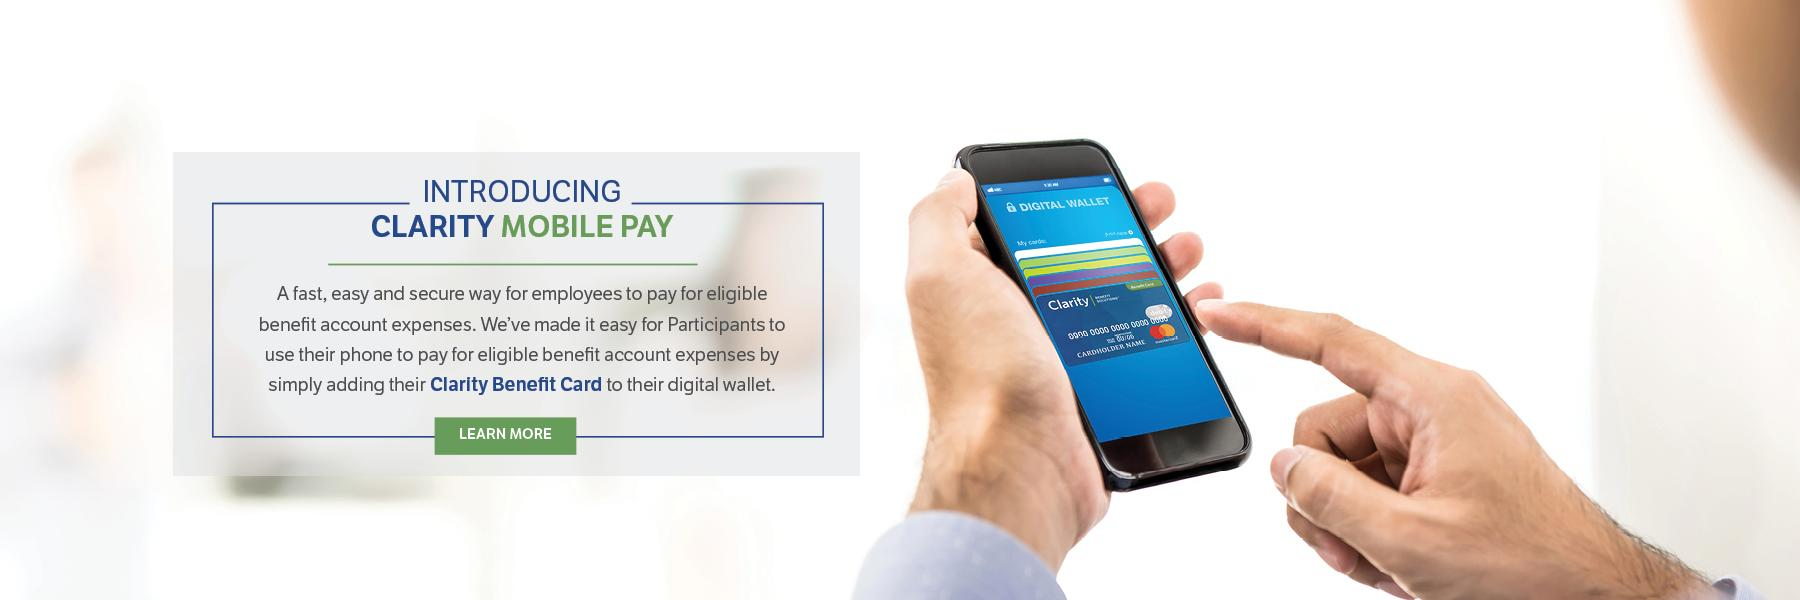 Clarity Mobile Pay